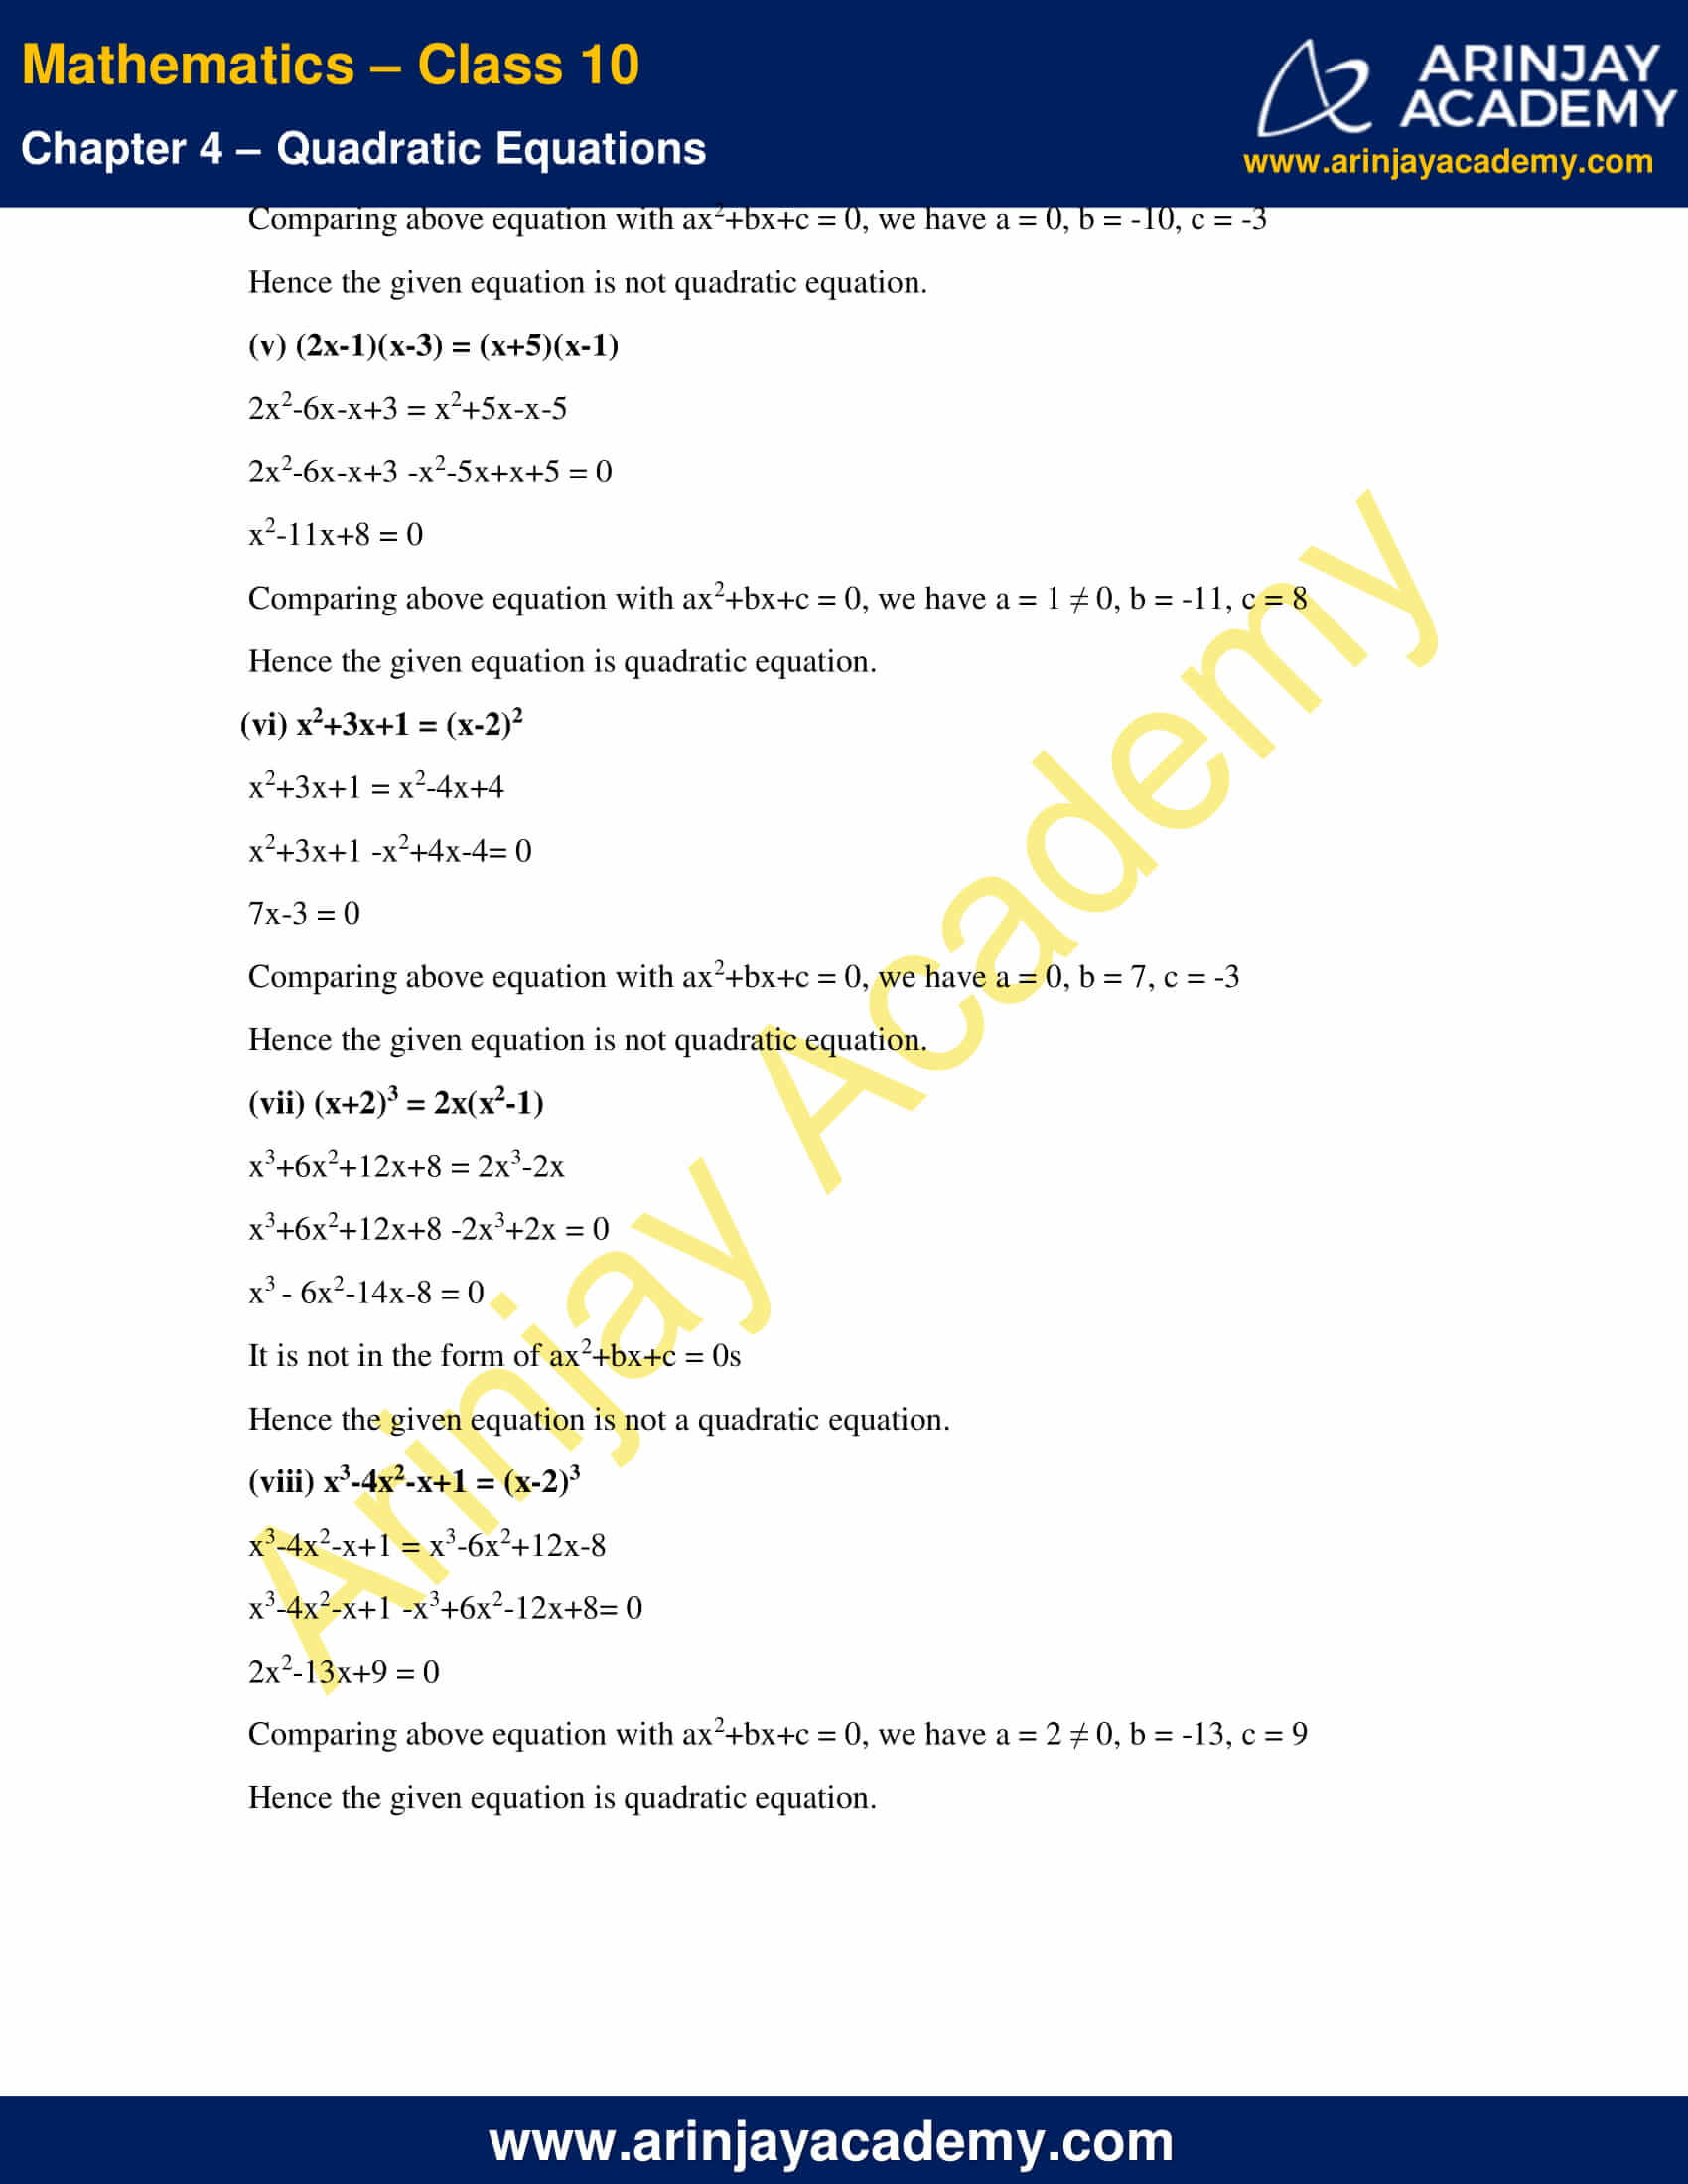 NCERT Solutions For Class 10 Maths Chapter 4 Exercise 4.1 image 2